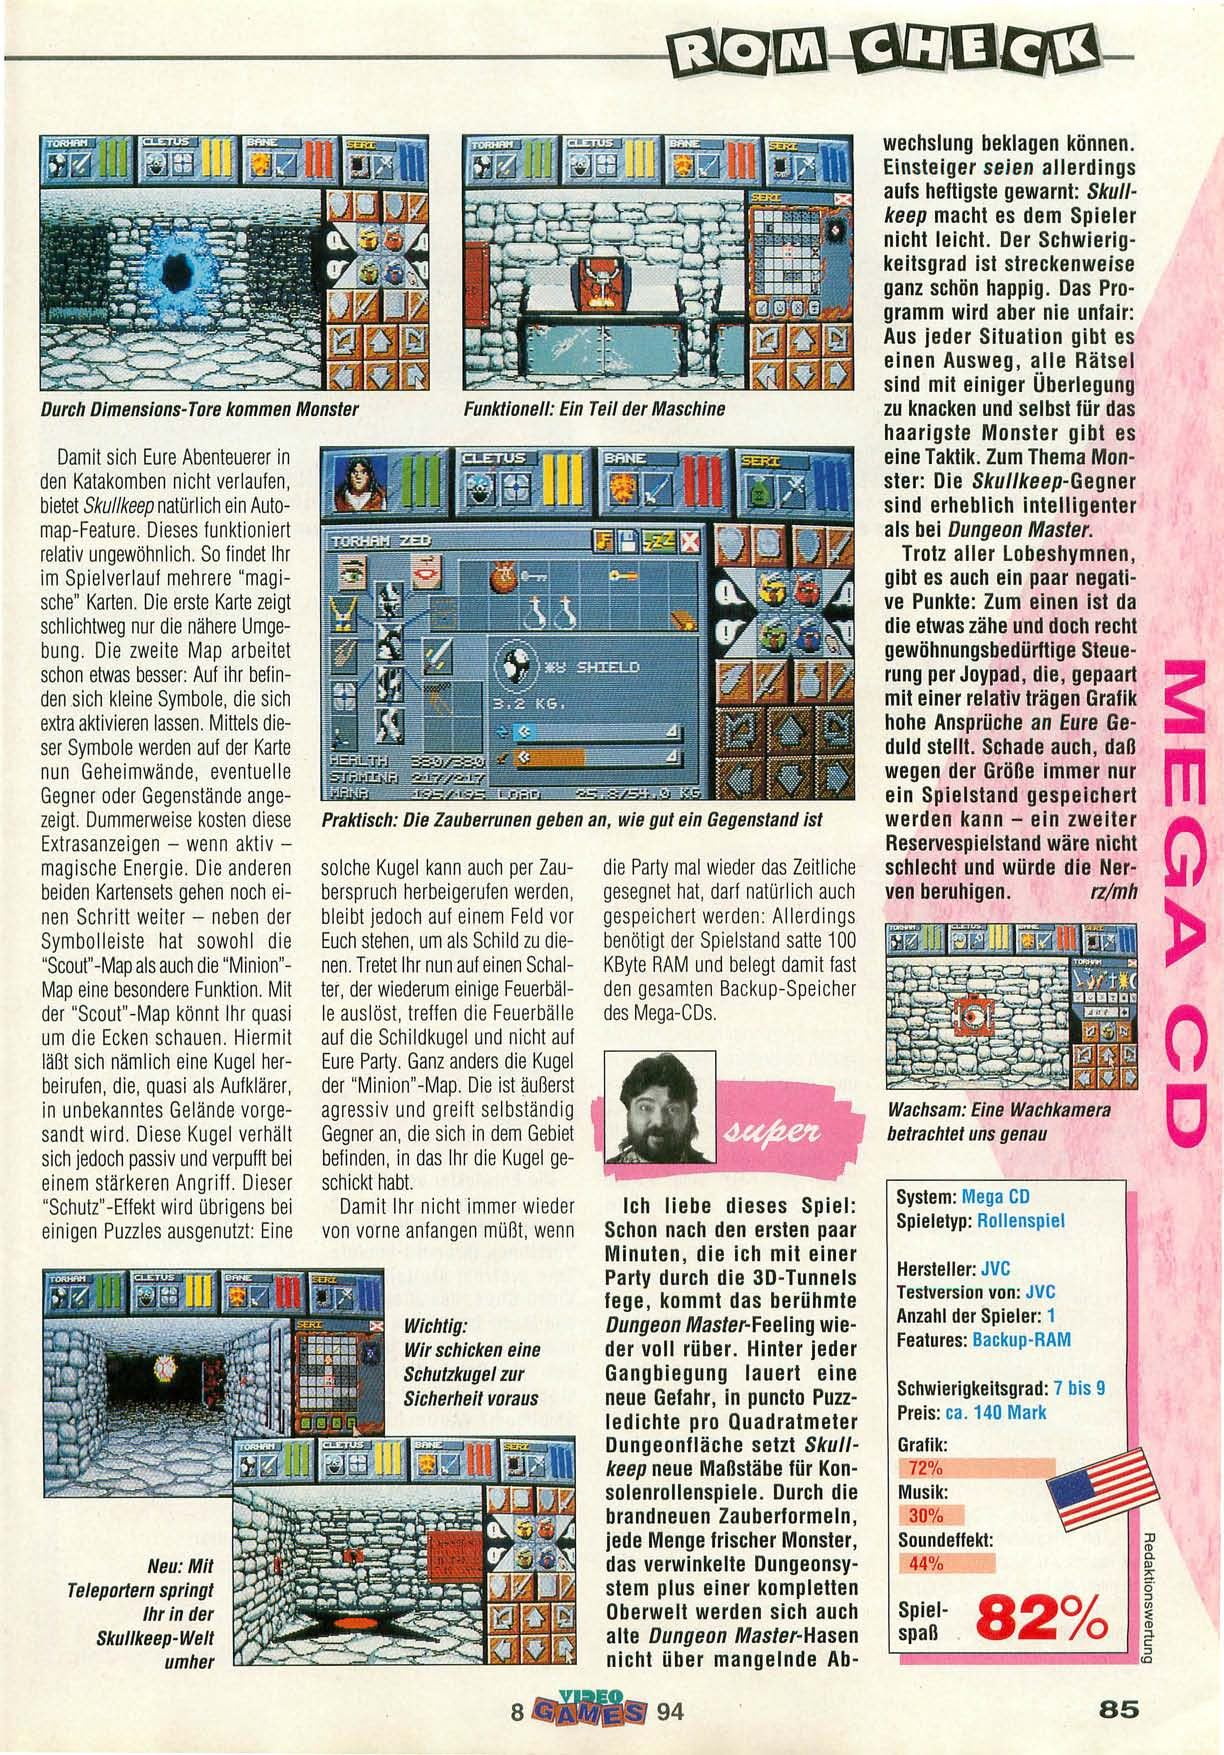 Dungeon Master II for Mega CD Review published in German magazine 'VideoGames', August 1994, Page 85